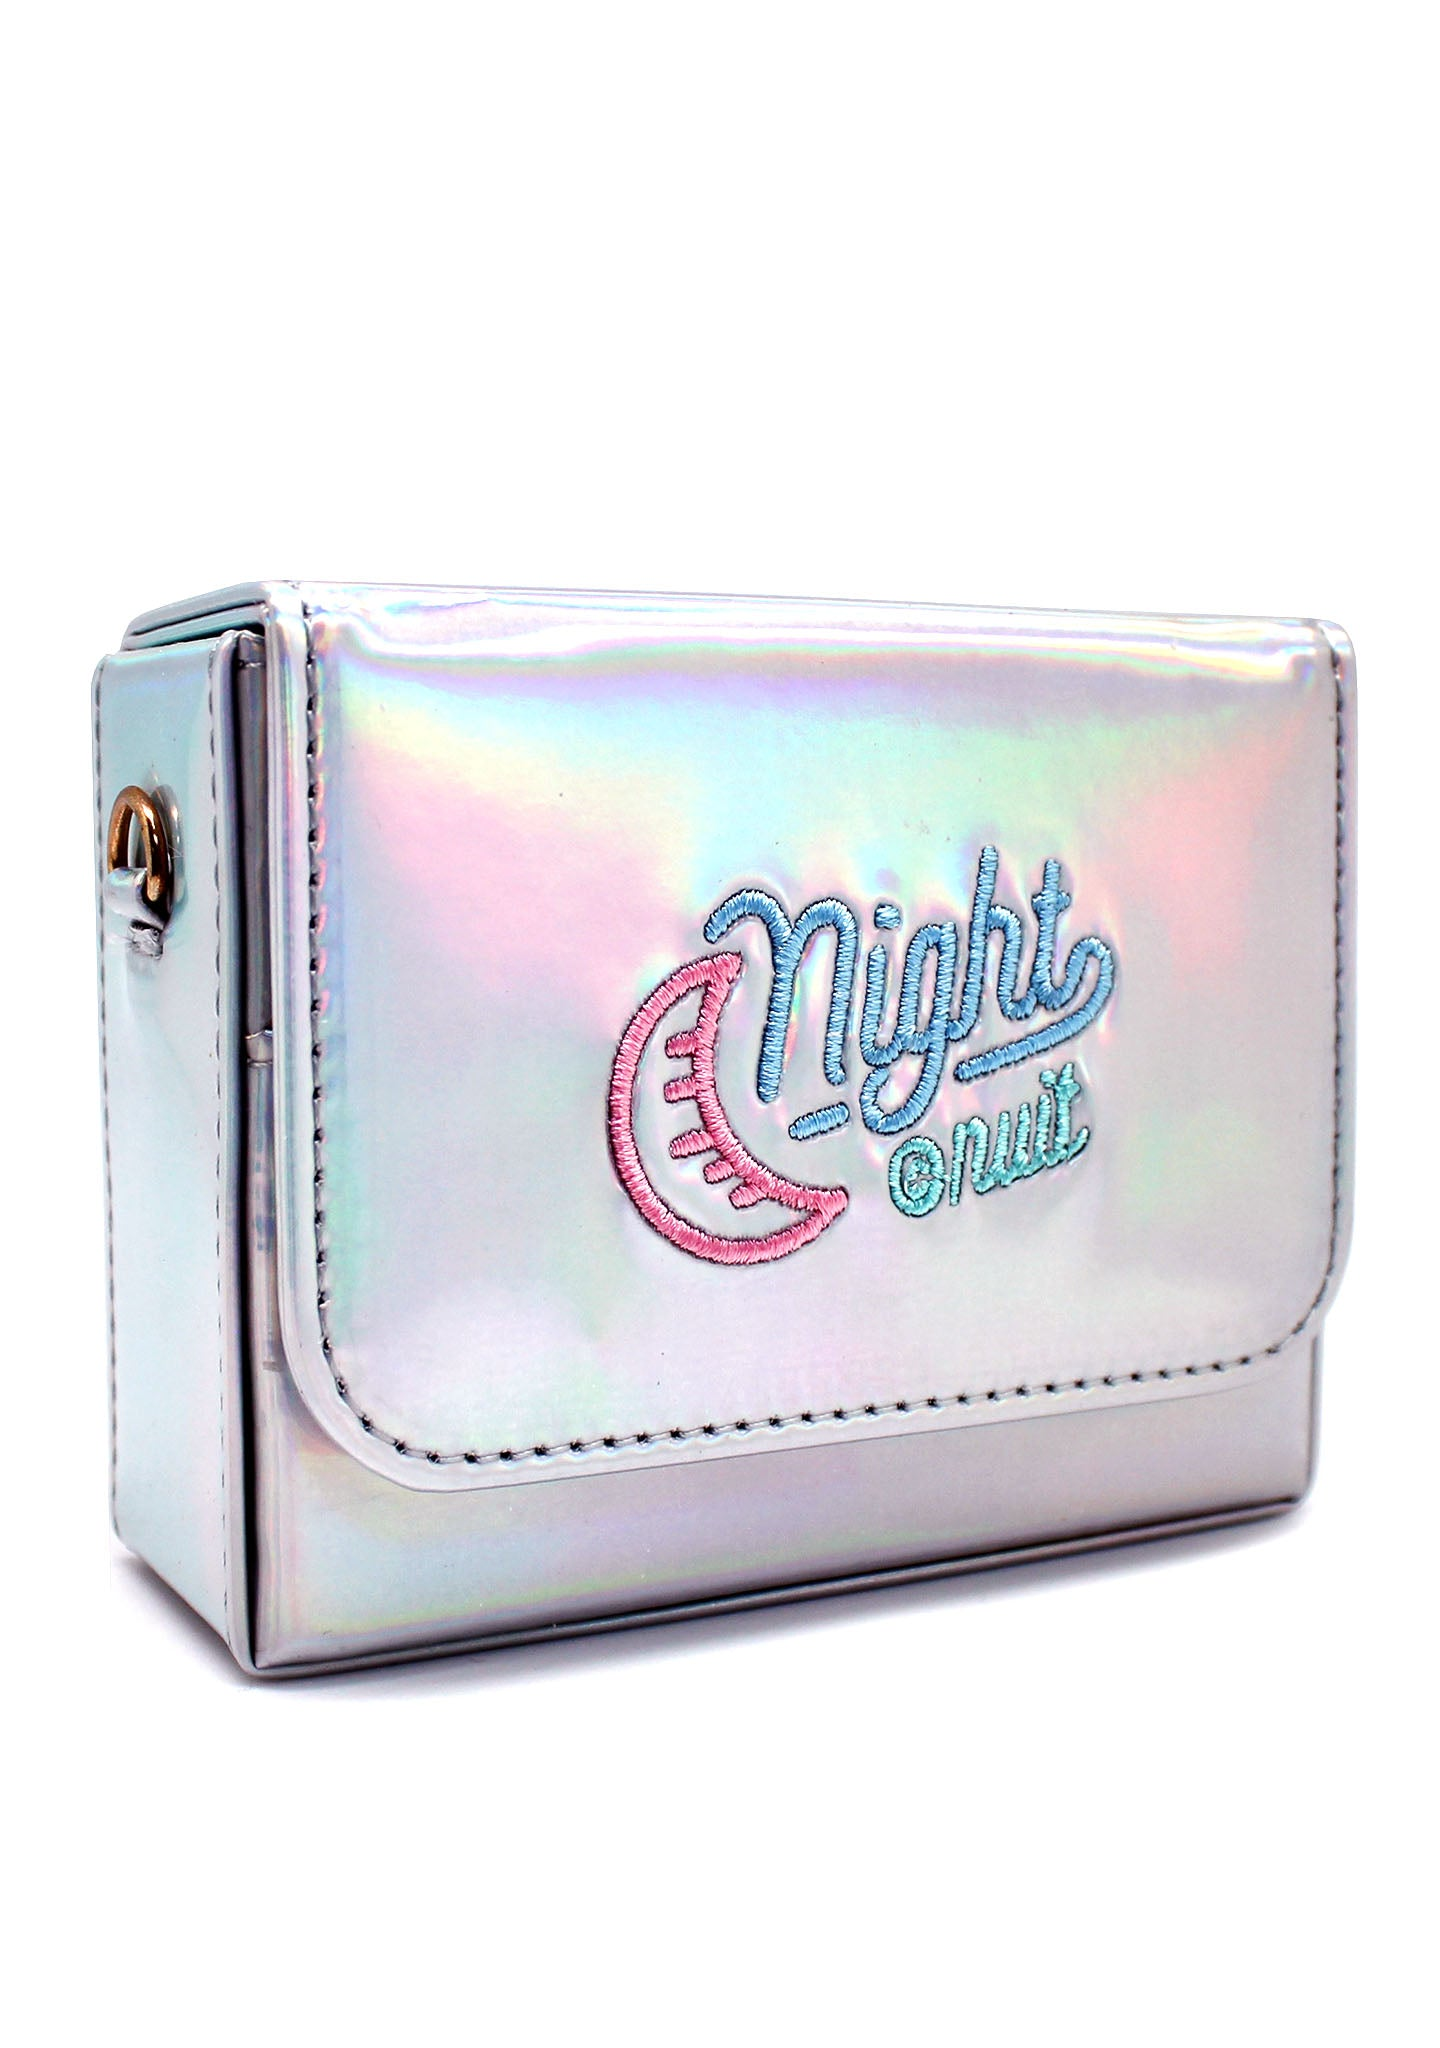 Night Out Crossbody Bag in Holographic Silver